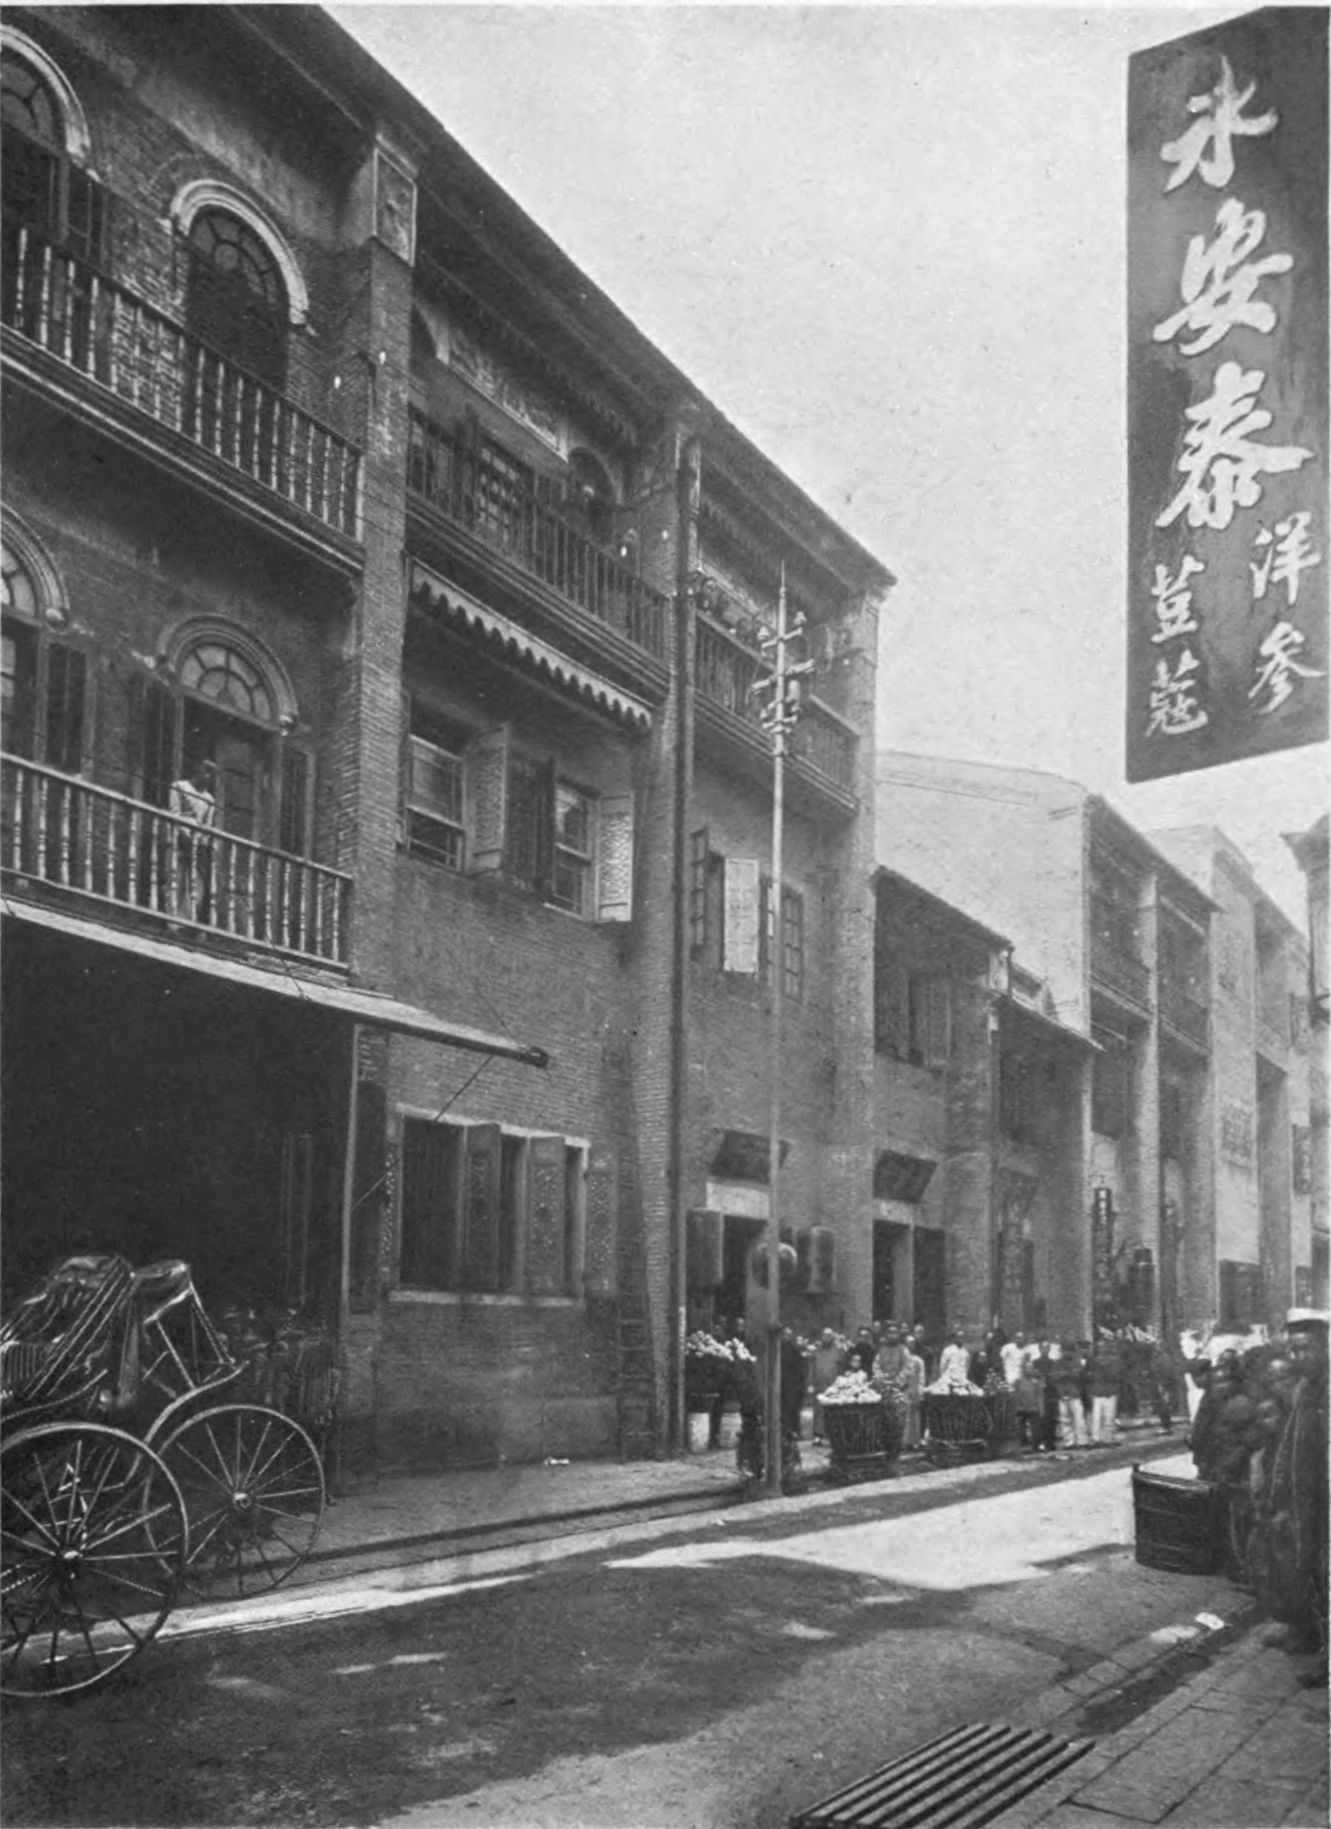 Tcitp d241 offices of the yuen fat hong.jpg